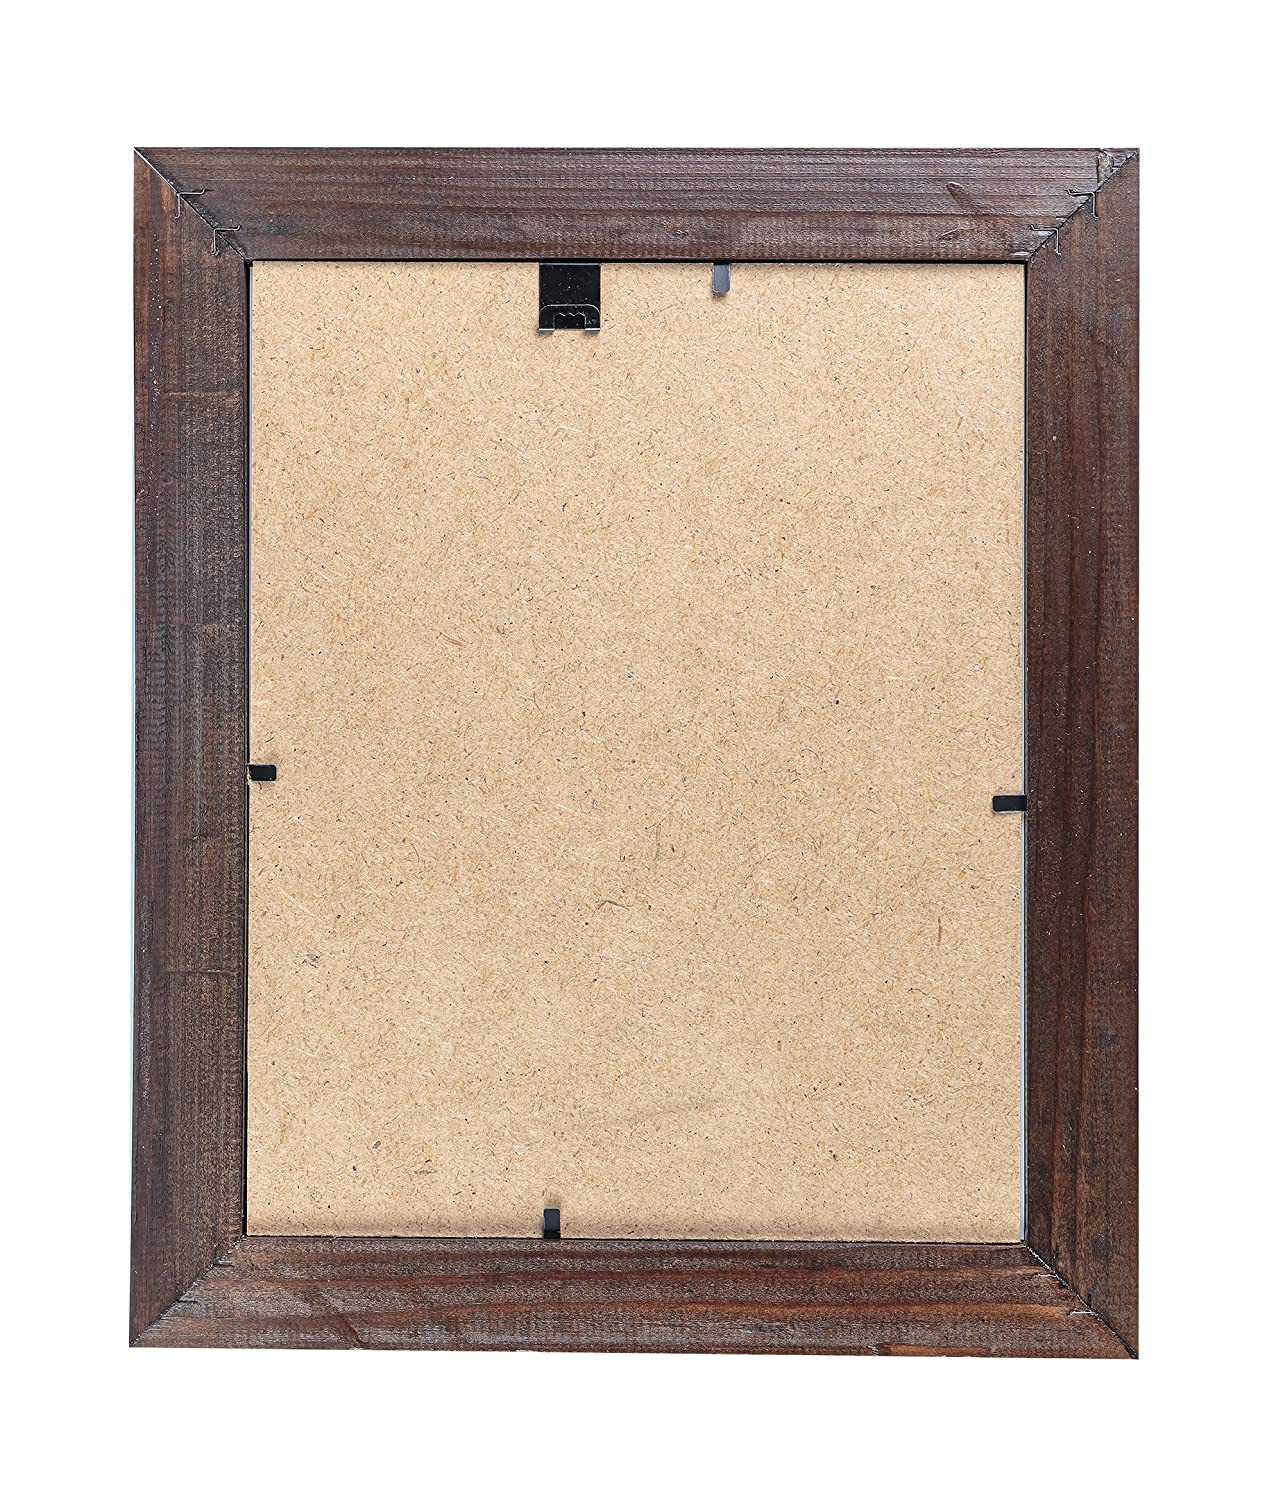 8x10 Wooden Picture Frames Brown Pack of Two 4x6 inch and one 8x10 Rustic Picture Frame Made of Solid Wood High Definition Glass for Table Top Display and Wall mounting Photo Frame Walnut